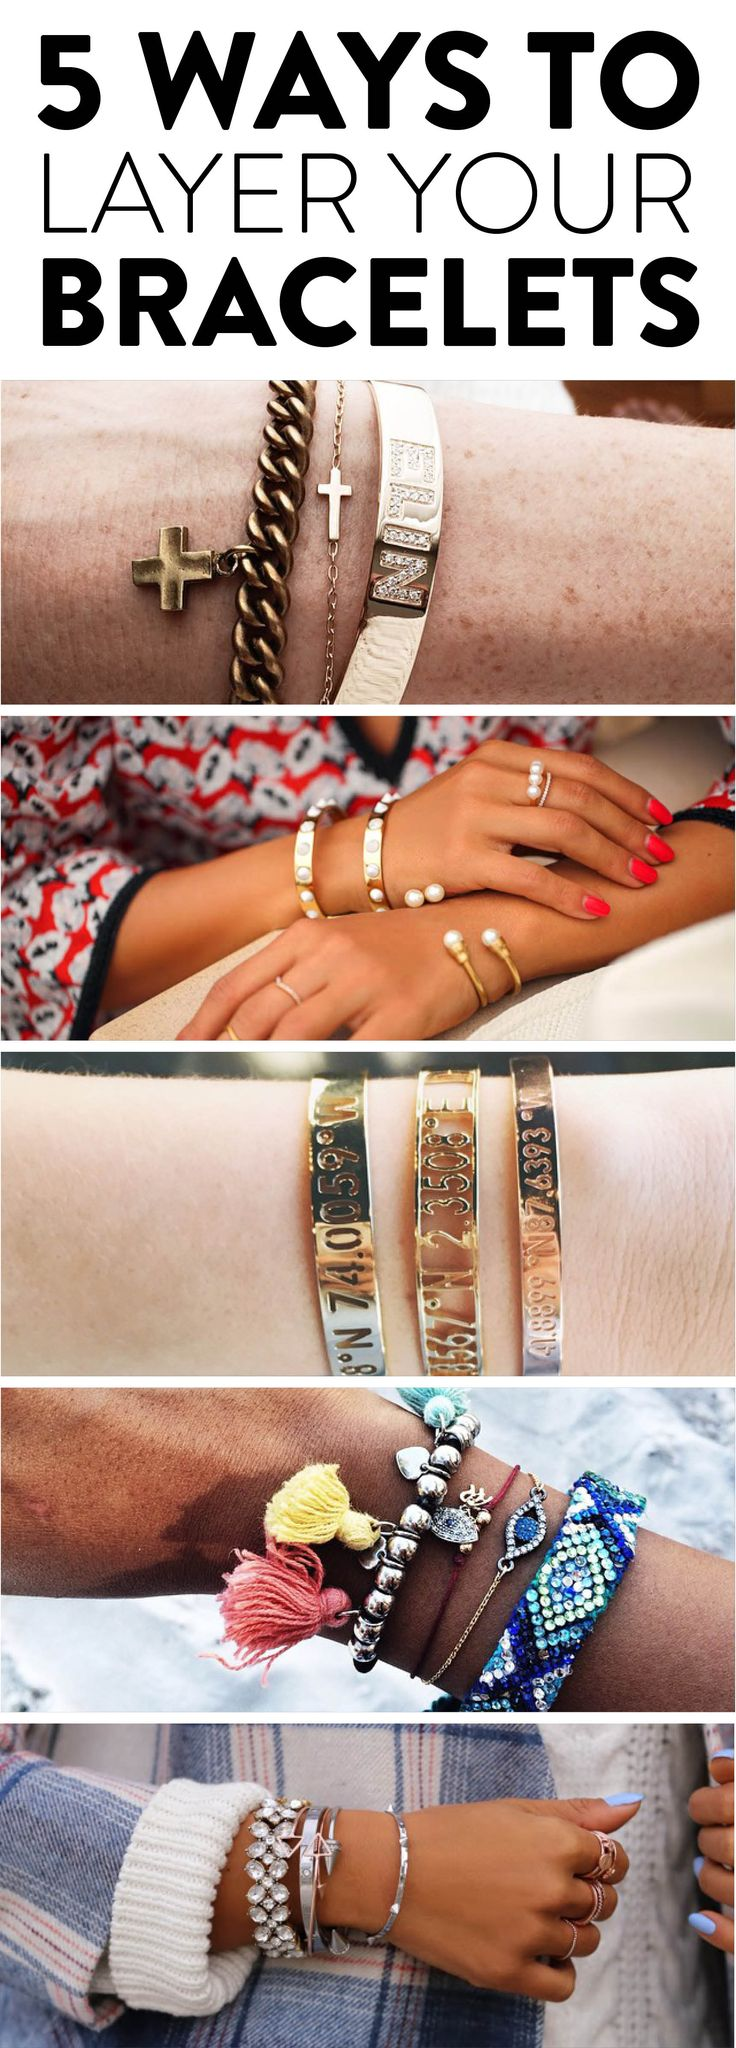 How to layer bracelets - good tips!